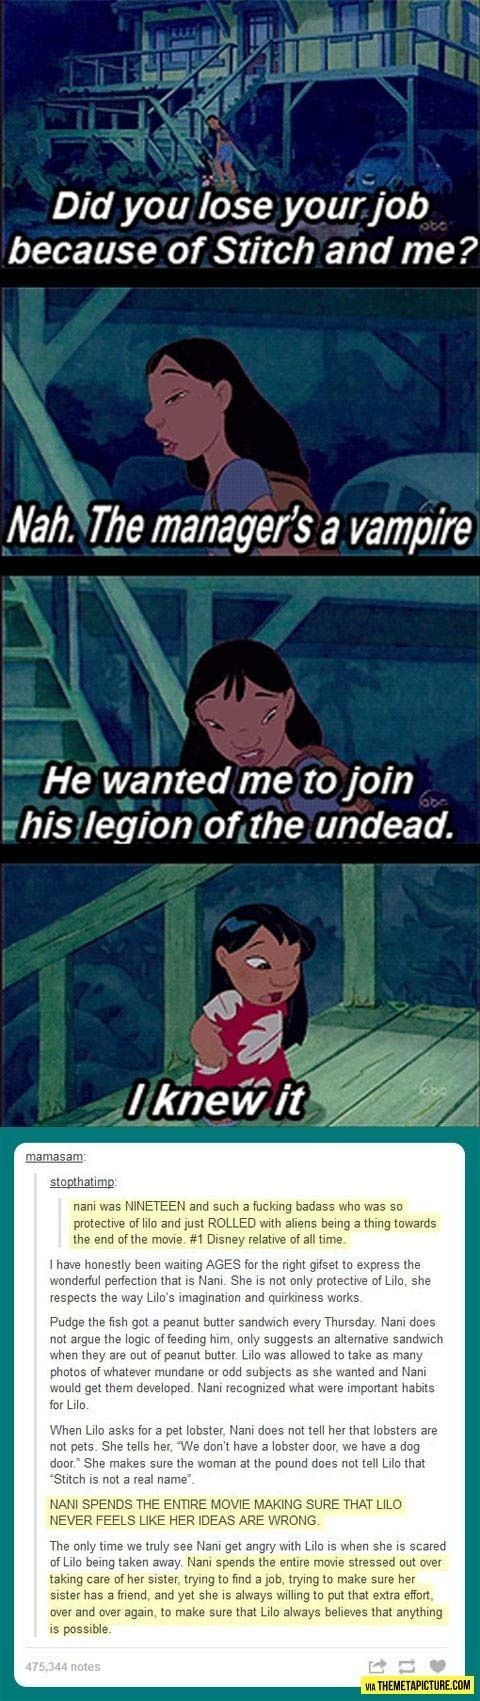 And this is the kind of mommy I want to be, just like Nani was to Lilo. Right in the feels. Oh lordy. Best movie ever.